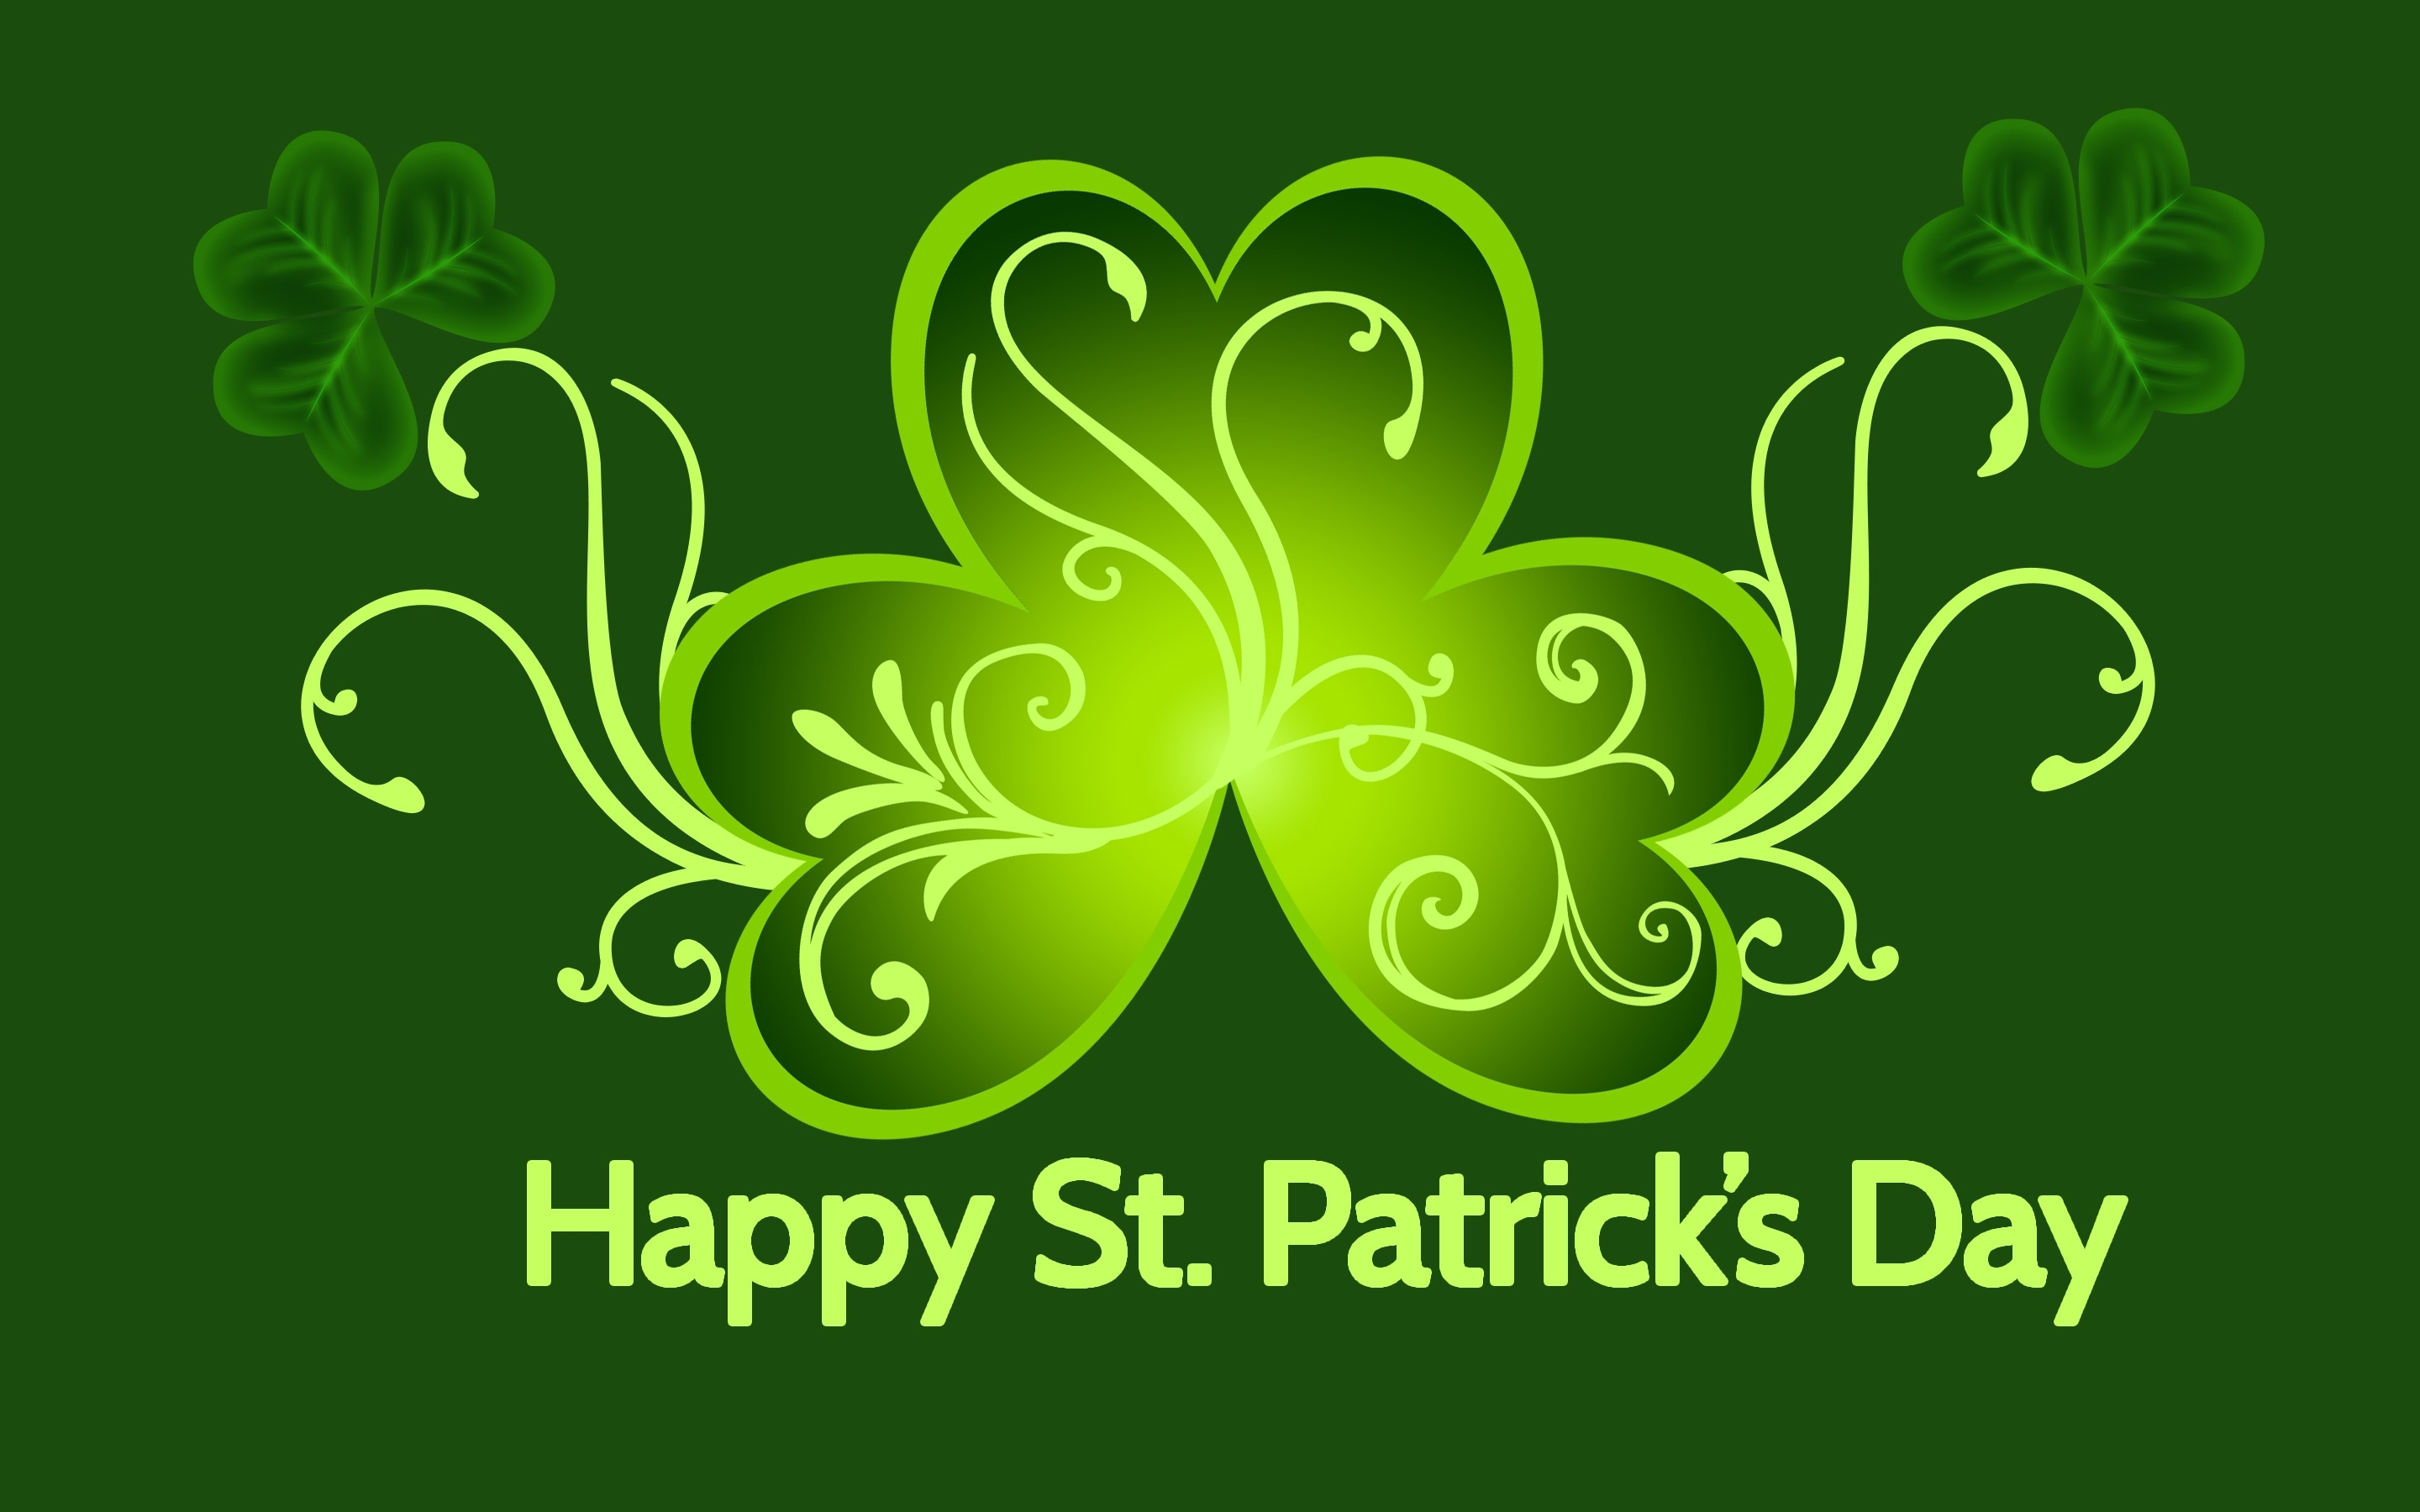 86 st. patrick's day hd wallpapers | background images - wallpaper abyss